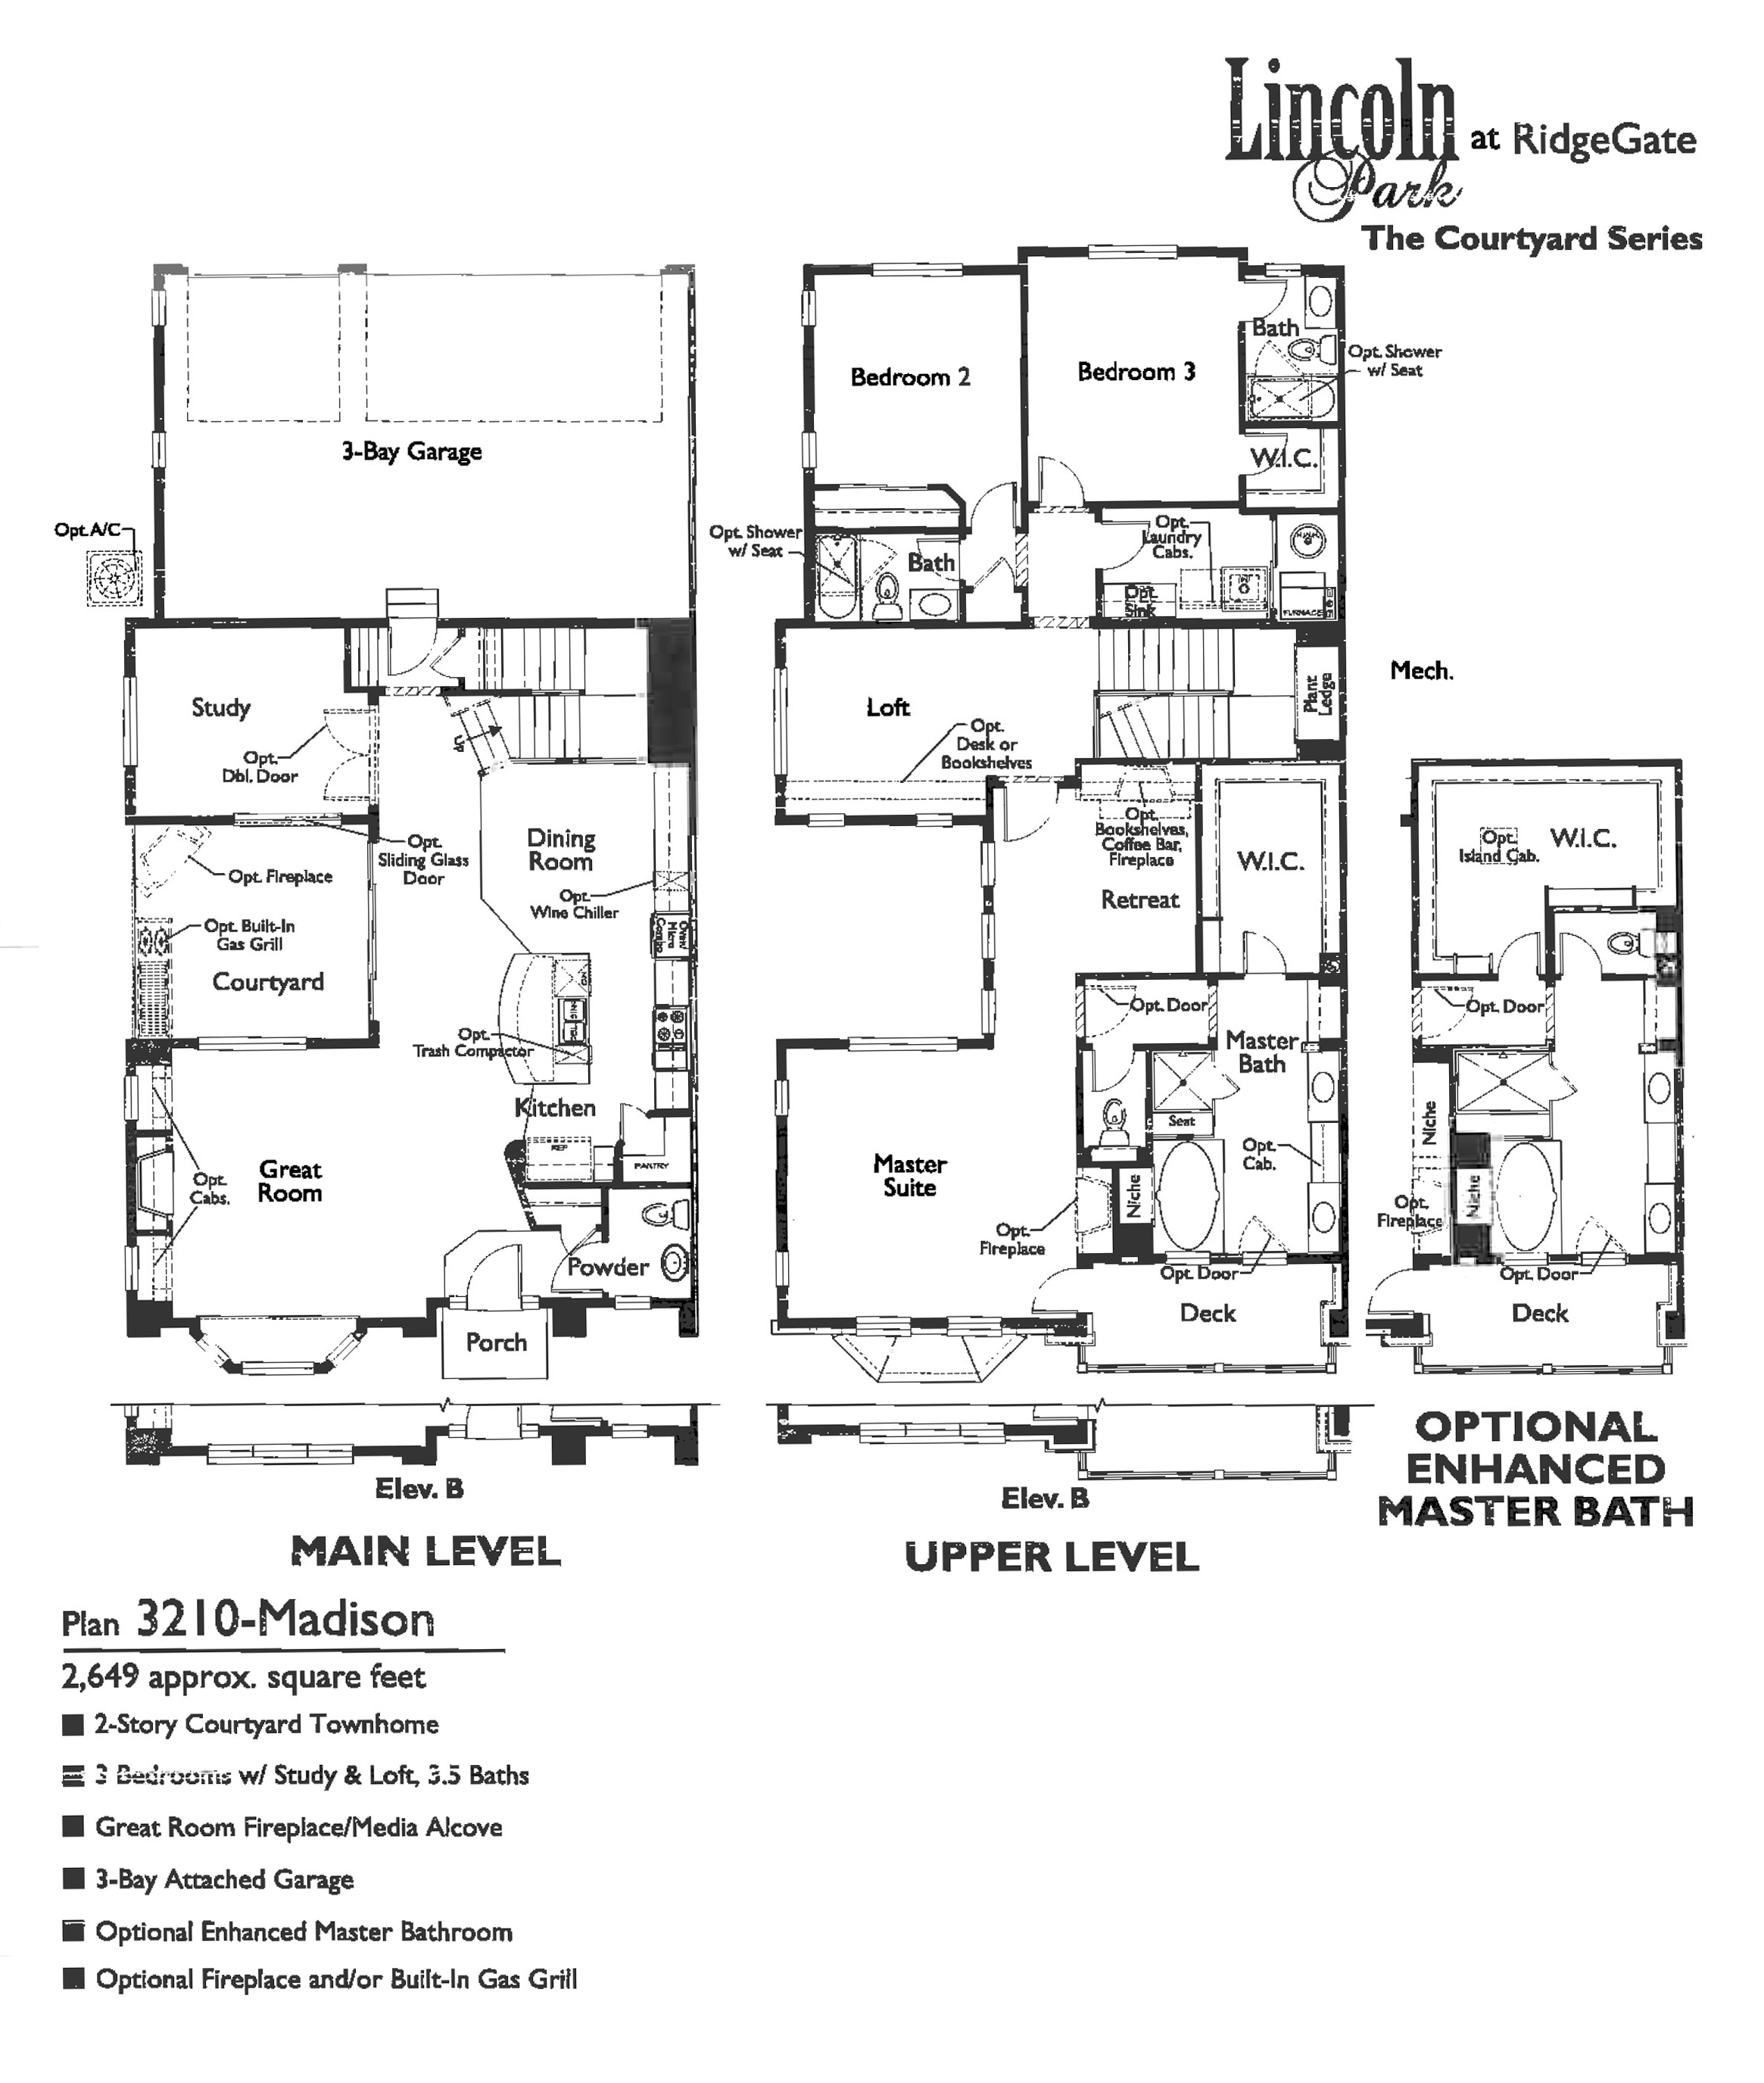 Madison Floor Plan for Lincoln Park at RidgeGate in Lone Tree, CO